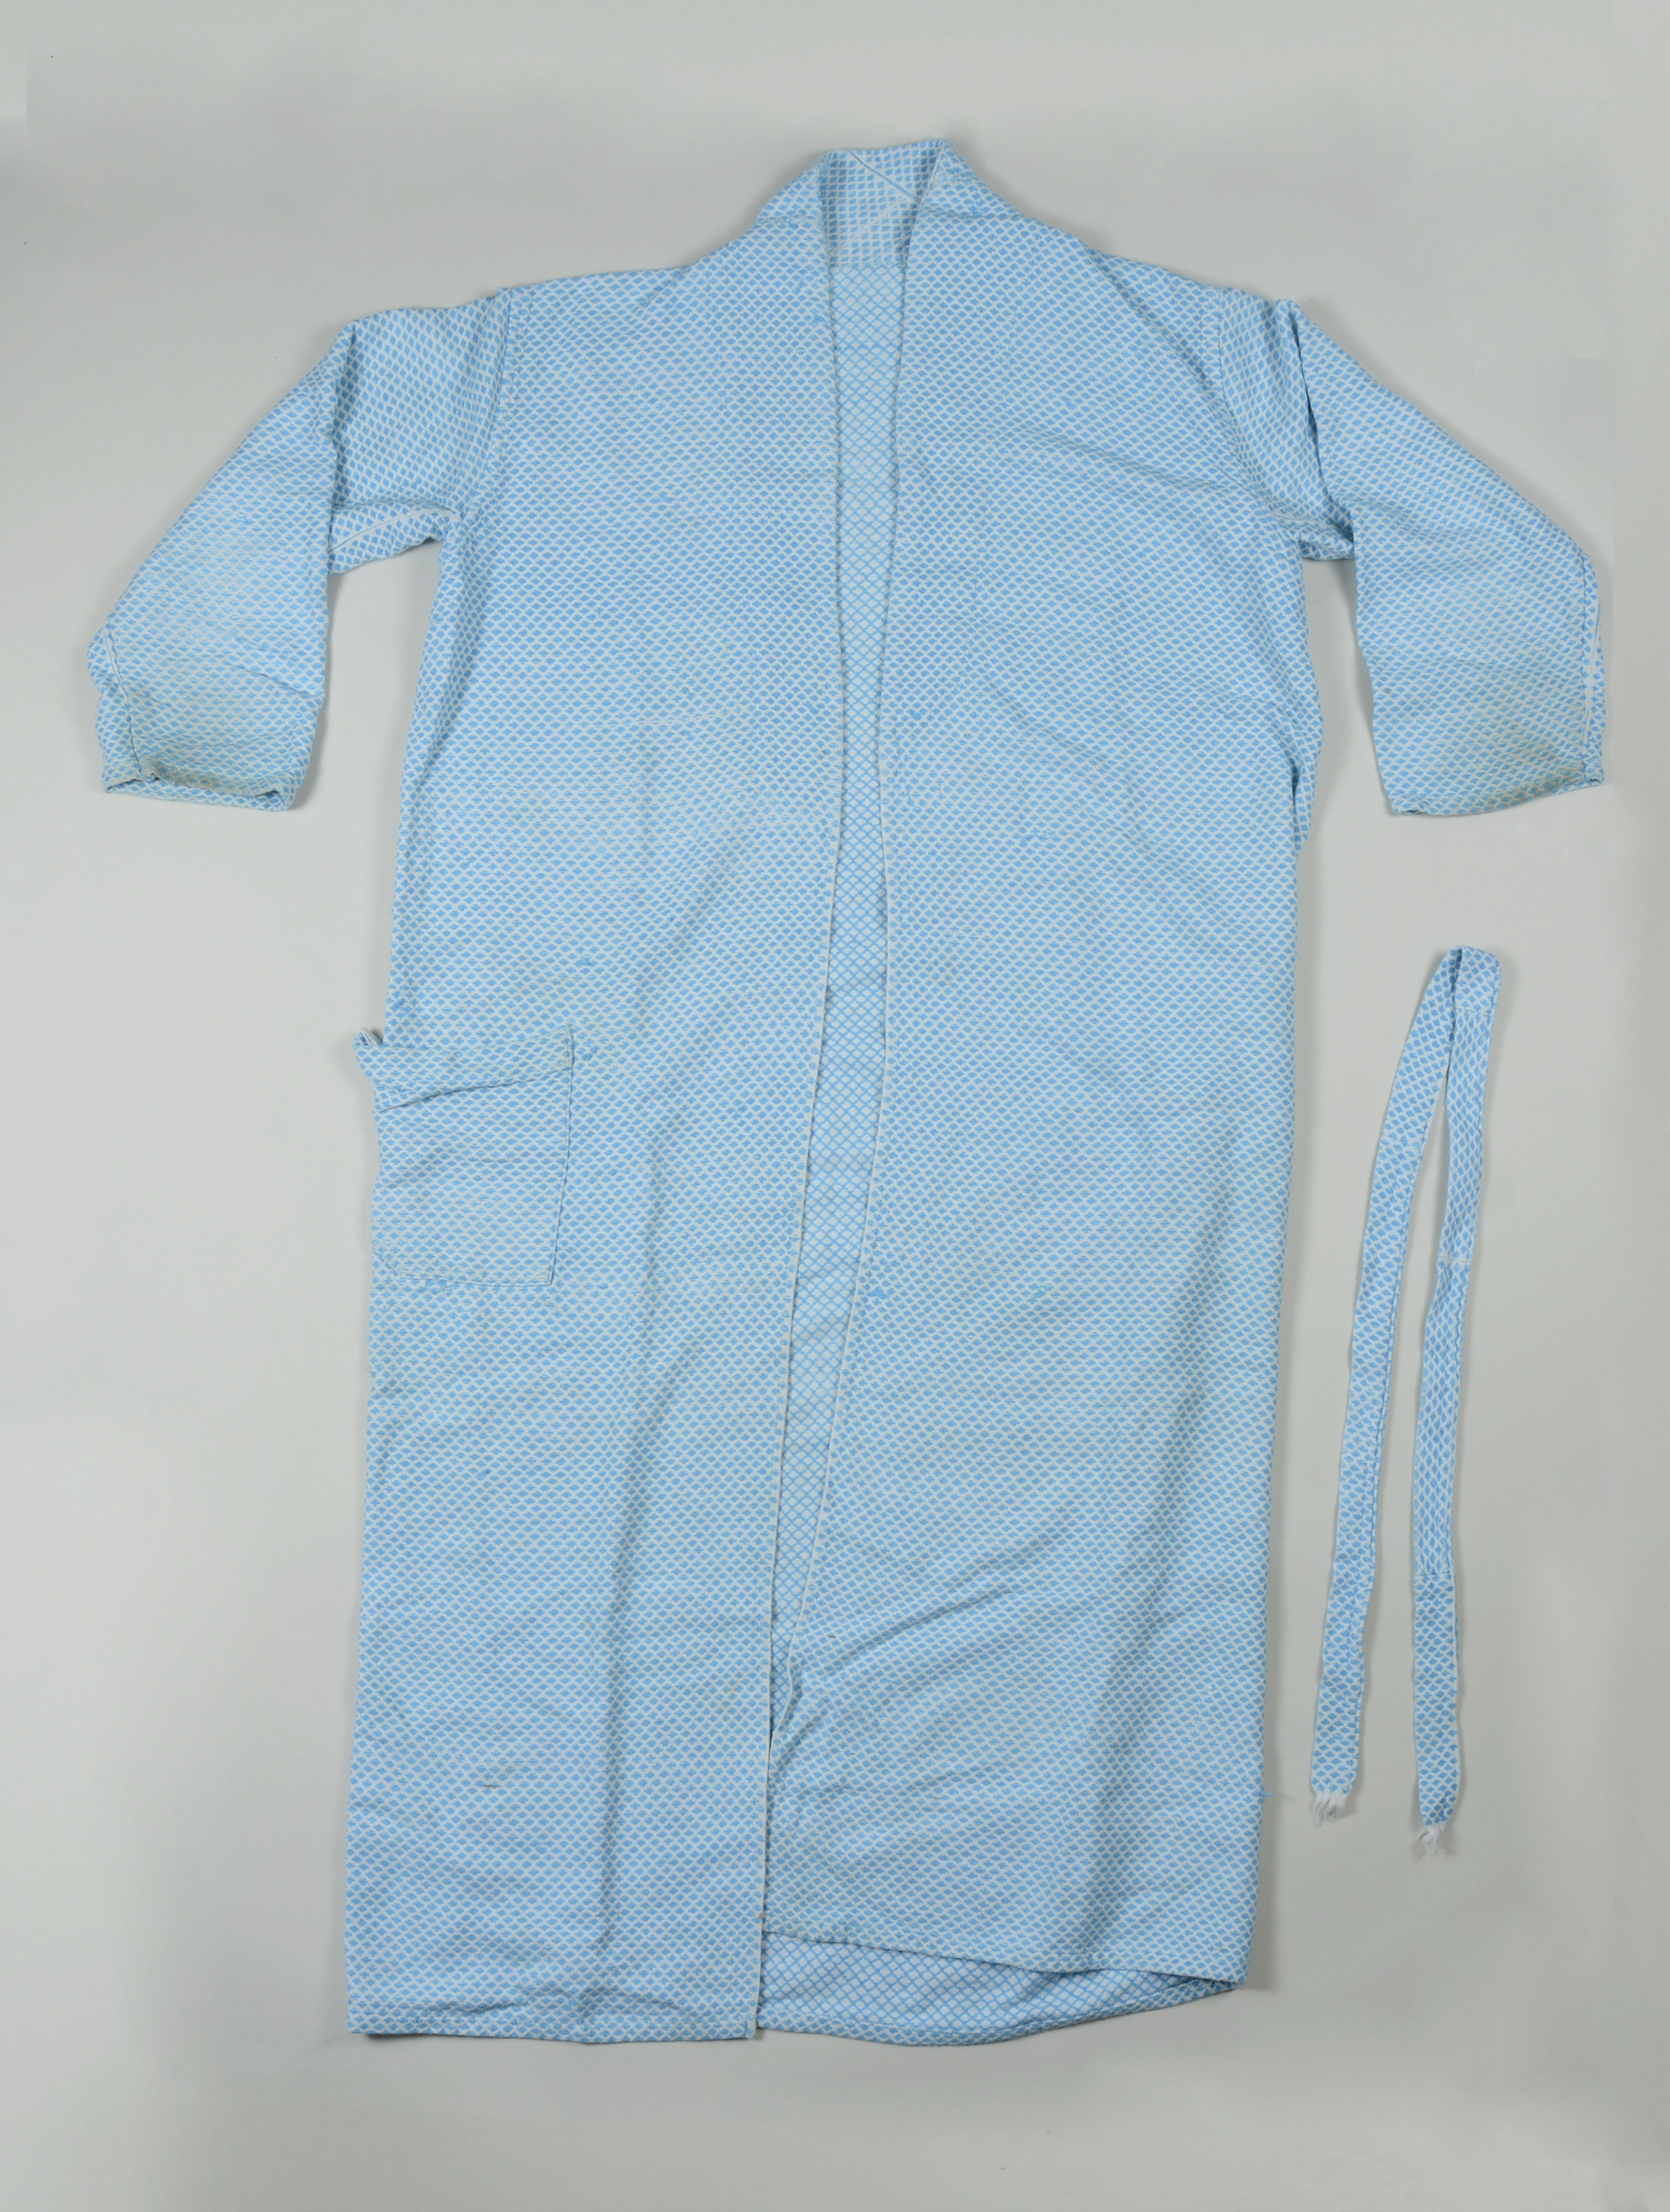 Abel Iloko (Hand woven) bath robe owned by Edwin P. Abaya- full.  Made in the 1960s and given to Edwin by his mother, who had the robe custom made for him. It was made in Vigan, Ilocos Sur. He brought it with him when he came to the US in 1968. It is important to Edwin because hand woven clothing and other products are and have been a thriving industry in Ilocos Sur and he does not know if we have any examples of this work in our collection at the Field Museum. He wants to make sure they are represented. He says the design is slightly unusual for the time, as they were usually more geometric. He does not wear it anymore because he wants to preserve it. He says he is grateful that this project (Homeland Memories) exists for the people who came to the US from the Philippines and wants to contribute these 2 objects to show what his hometown is known for.   Any views, findings, conclusions, or recommendations expressed in this story do not necessarily represent those of the National Endowment for the Humanities. [Copyright] Field Museum of Natural History - CC BY-NC